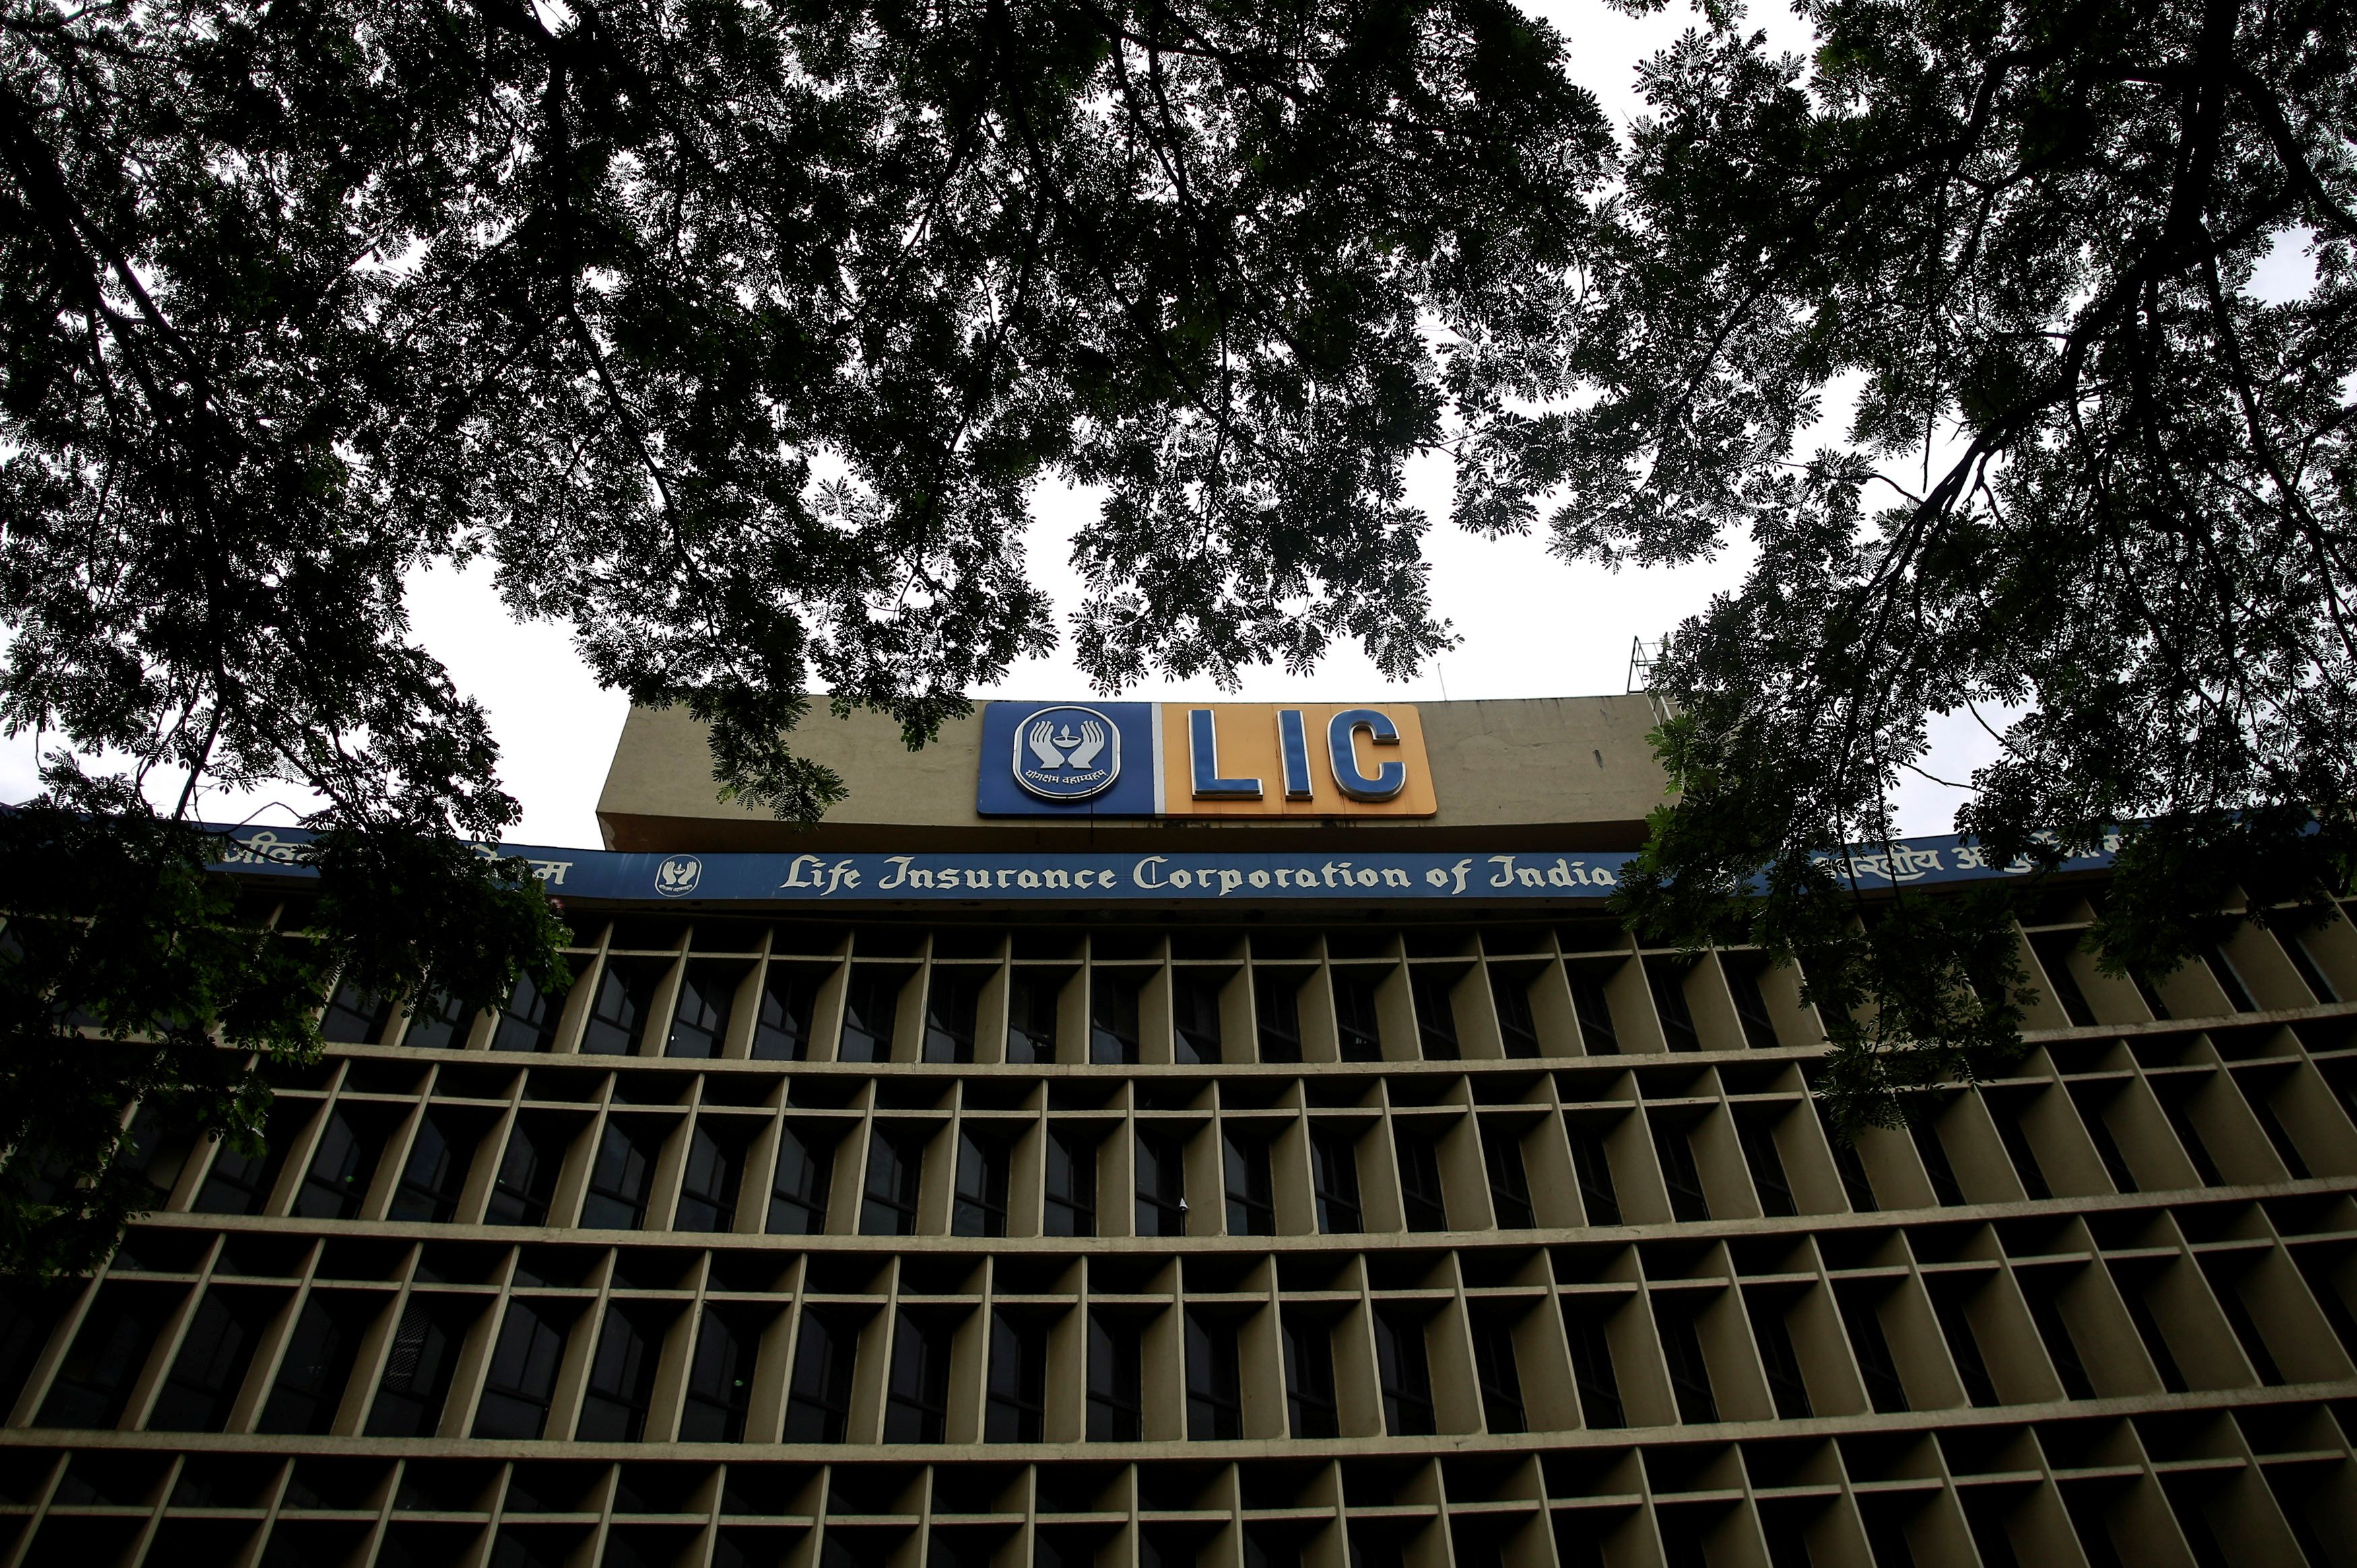 An exterior view of Life Insurance Corporation of India's (LIC) headquarters is seen in Mumbai September 18, 2014. REUTERS/Danish Siddiqui/File Photo